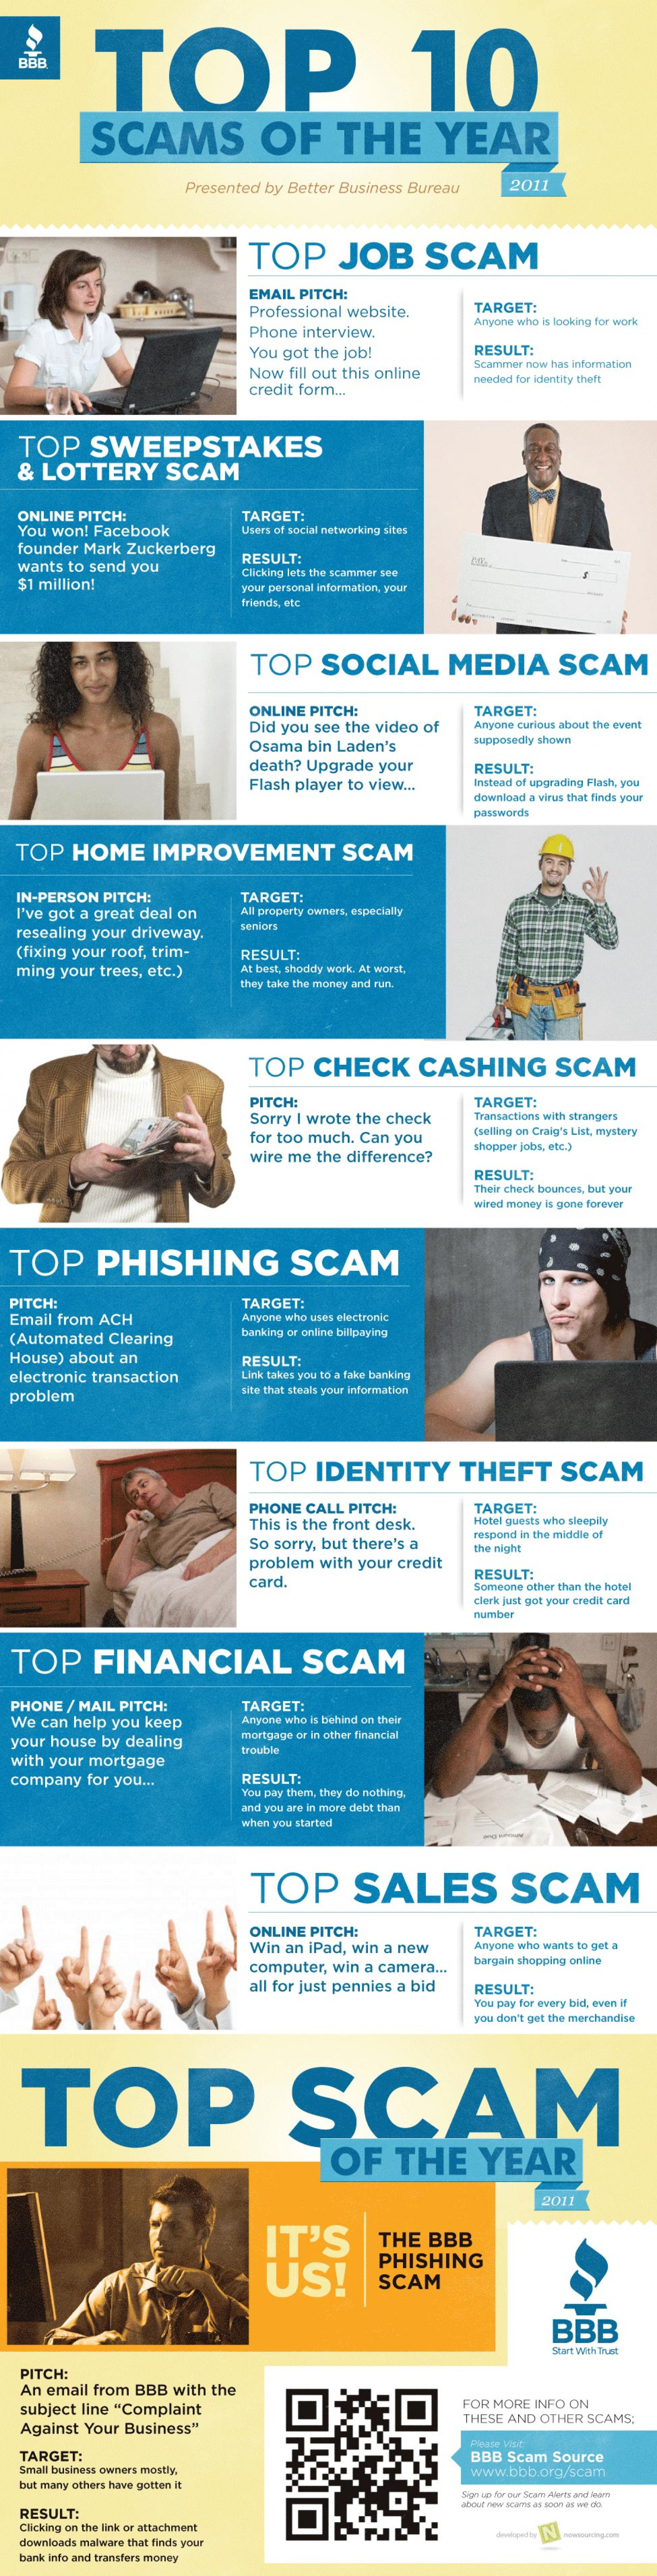 BBB Top 10 Scams of 2011 Infographic